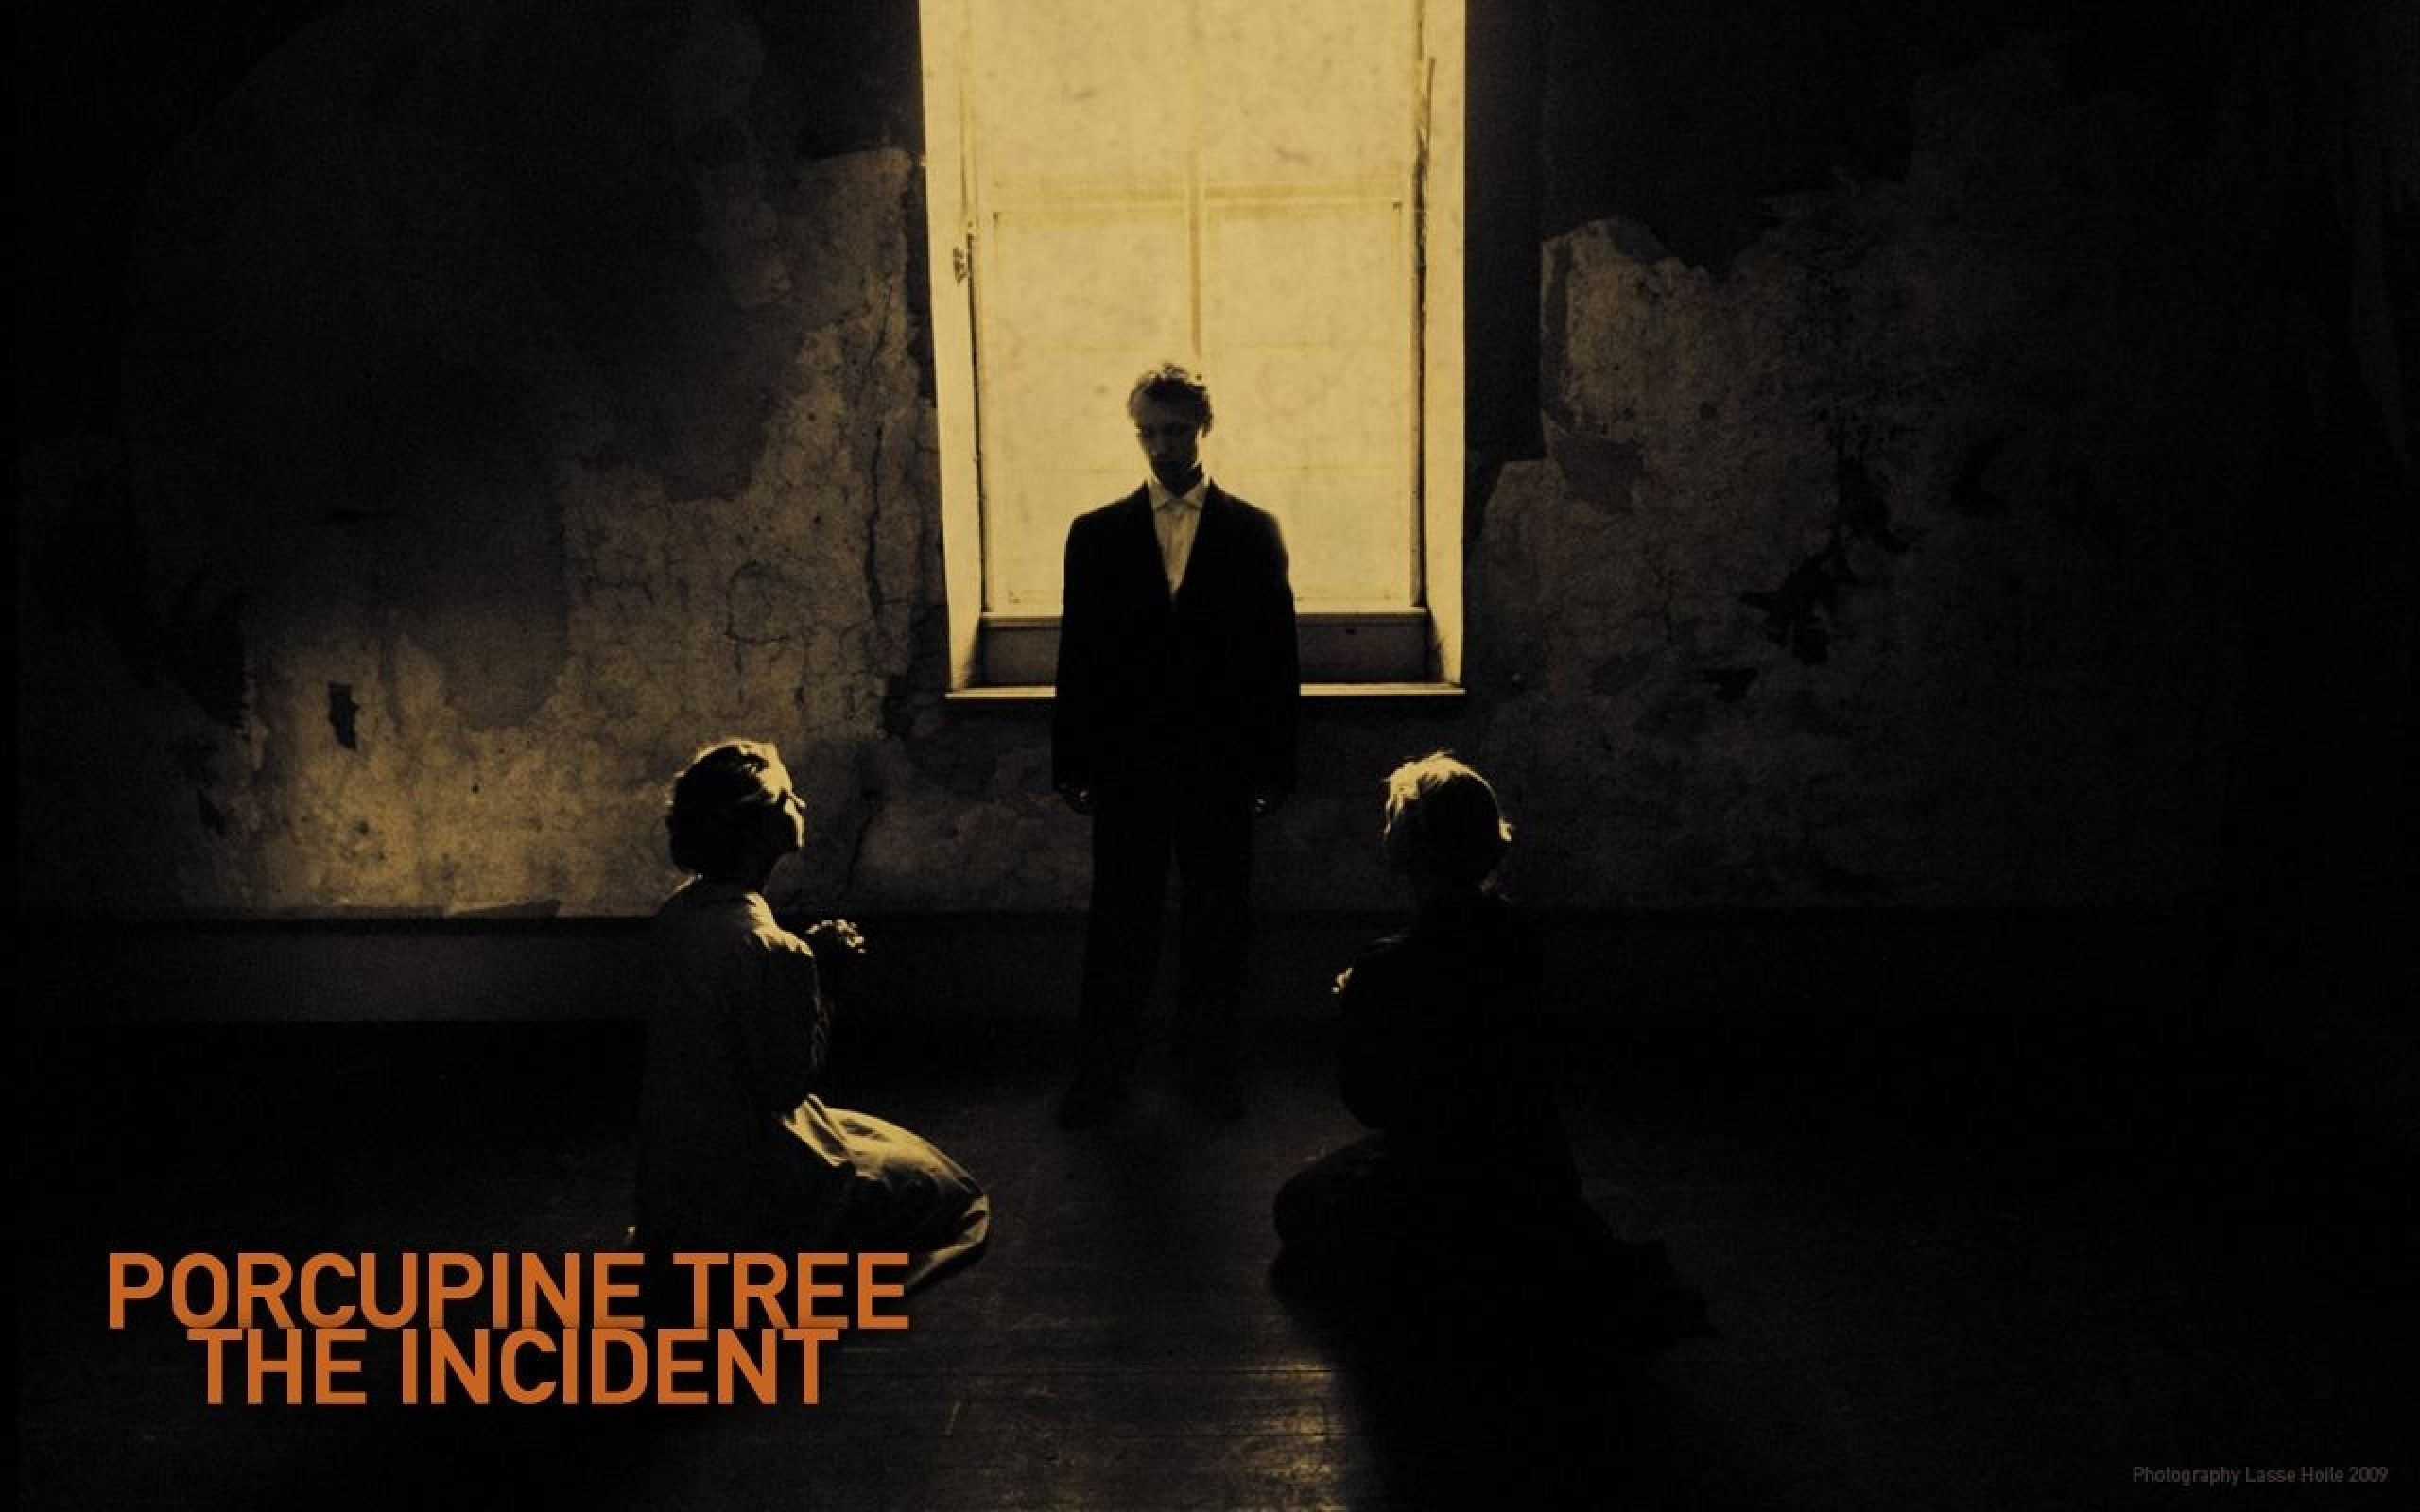 Porcupine tree wallpaper